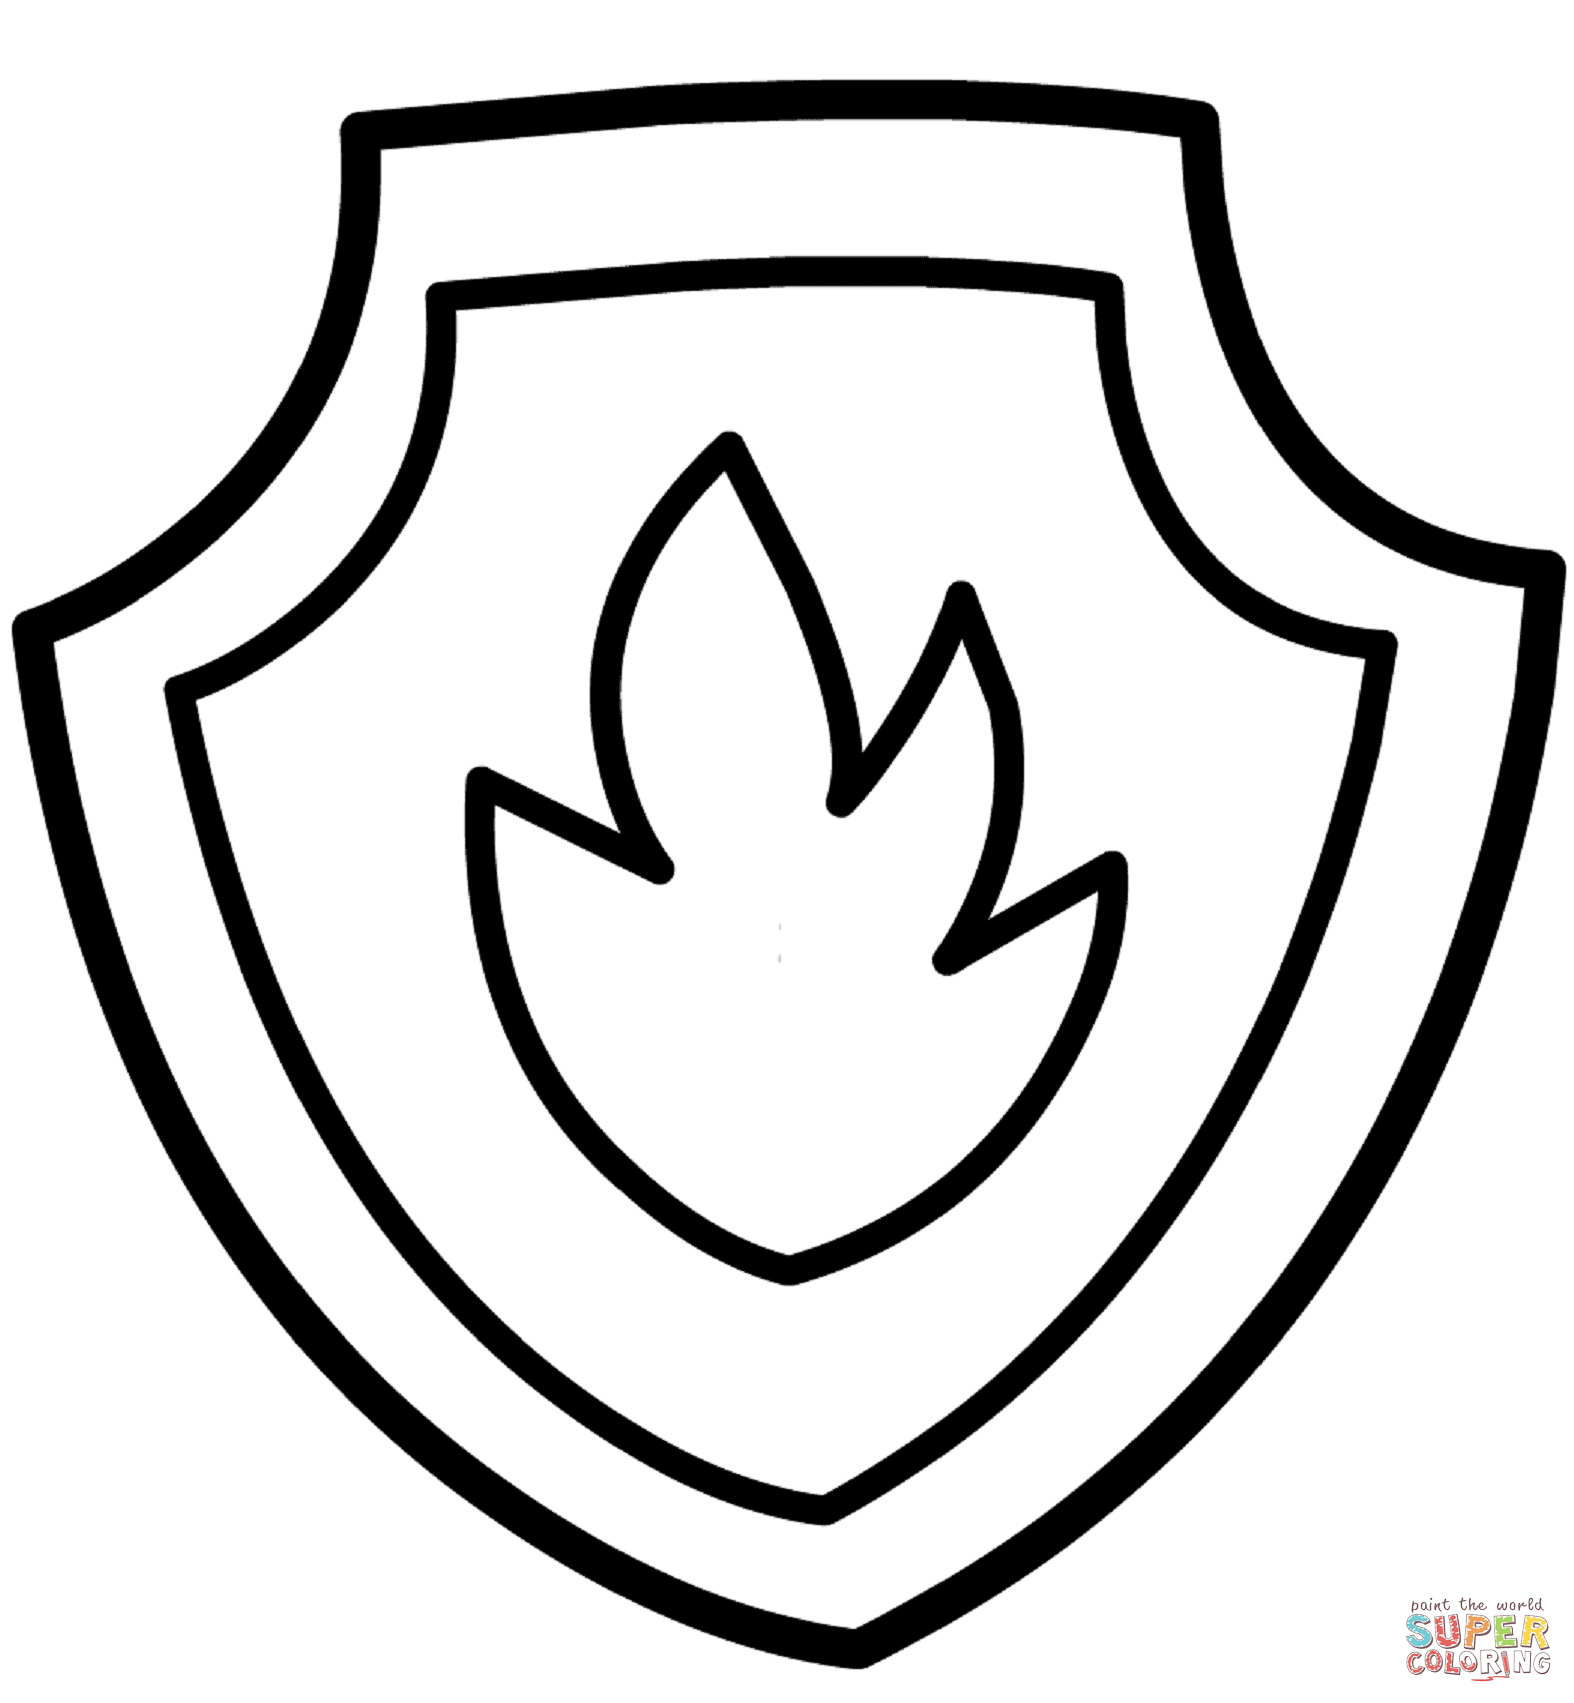 Patrol marshall s badge. Paw clipart coloring page graphic transparent stock